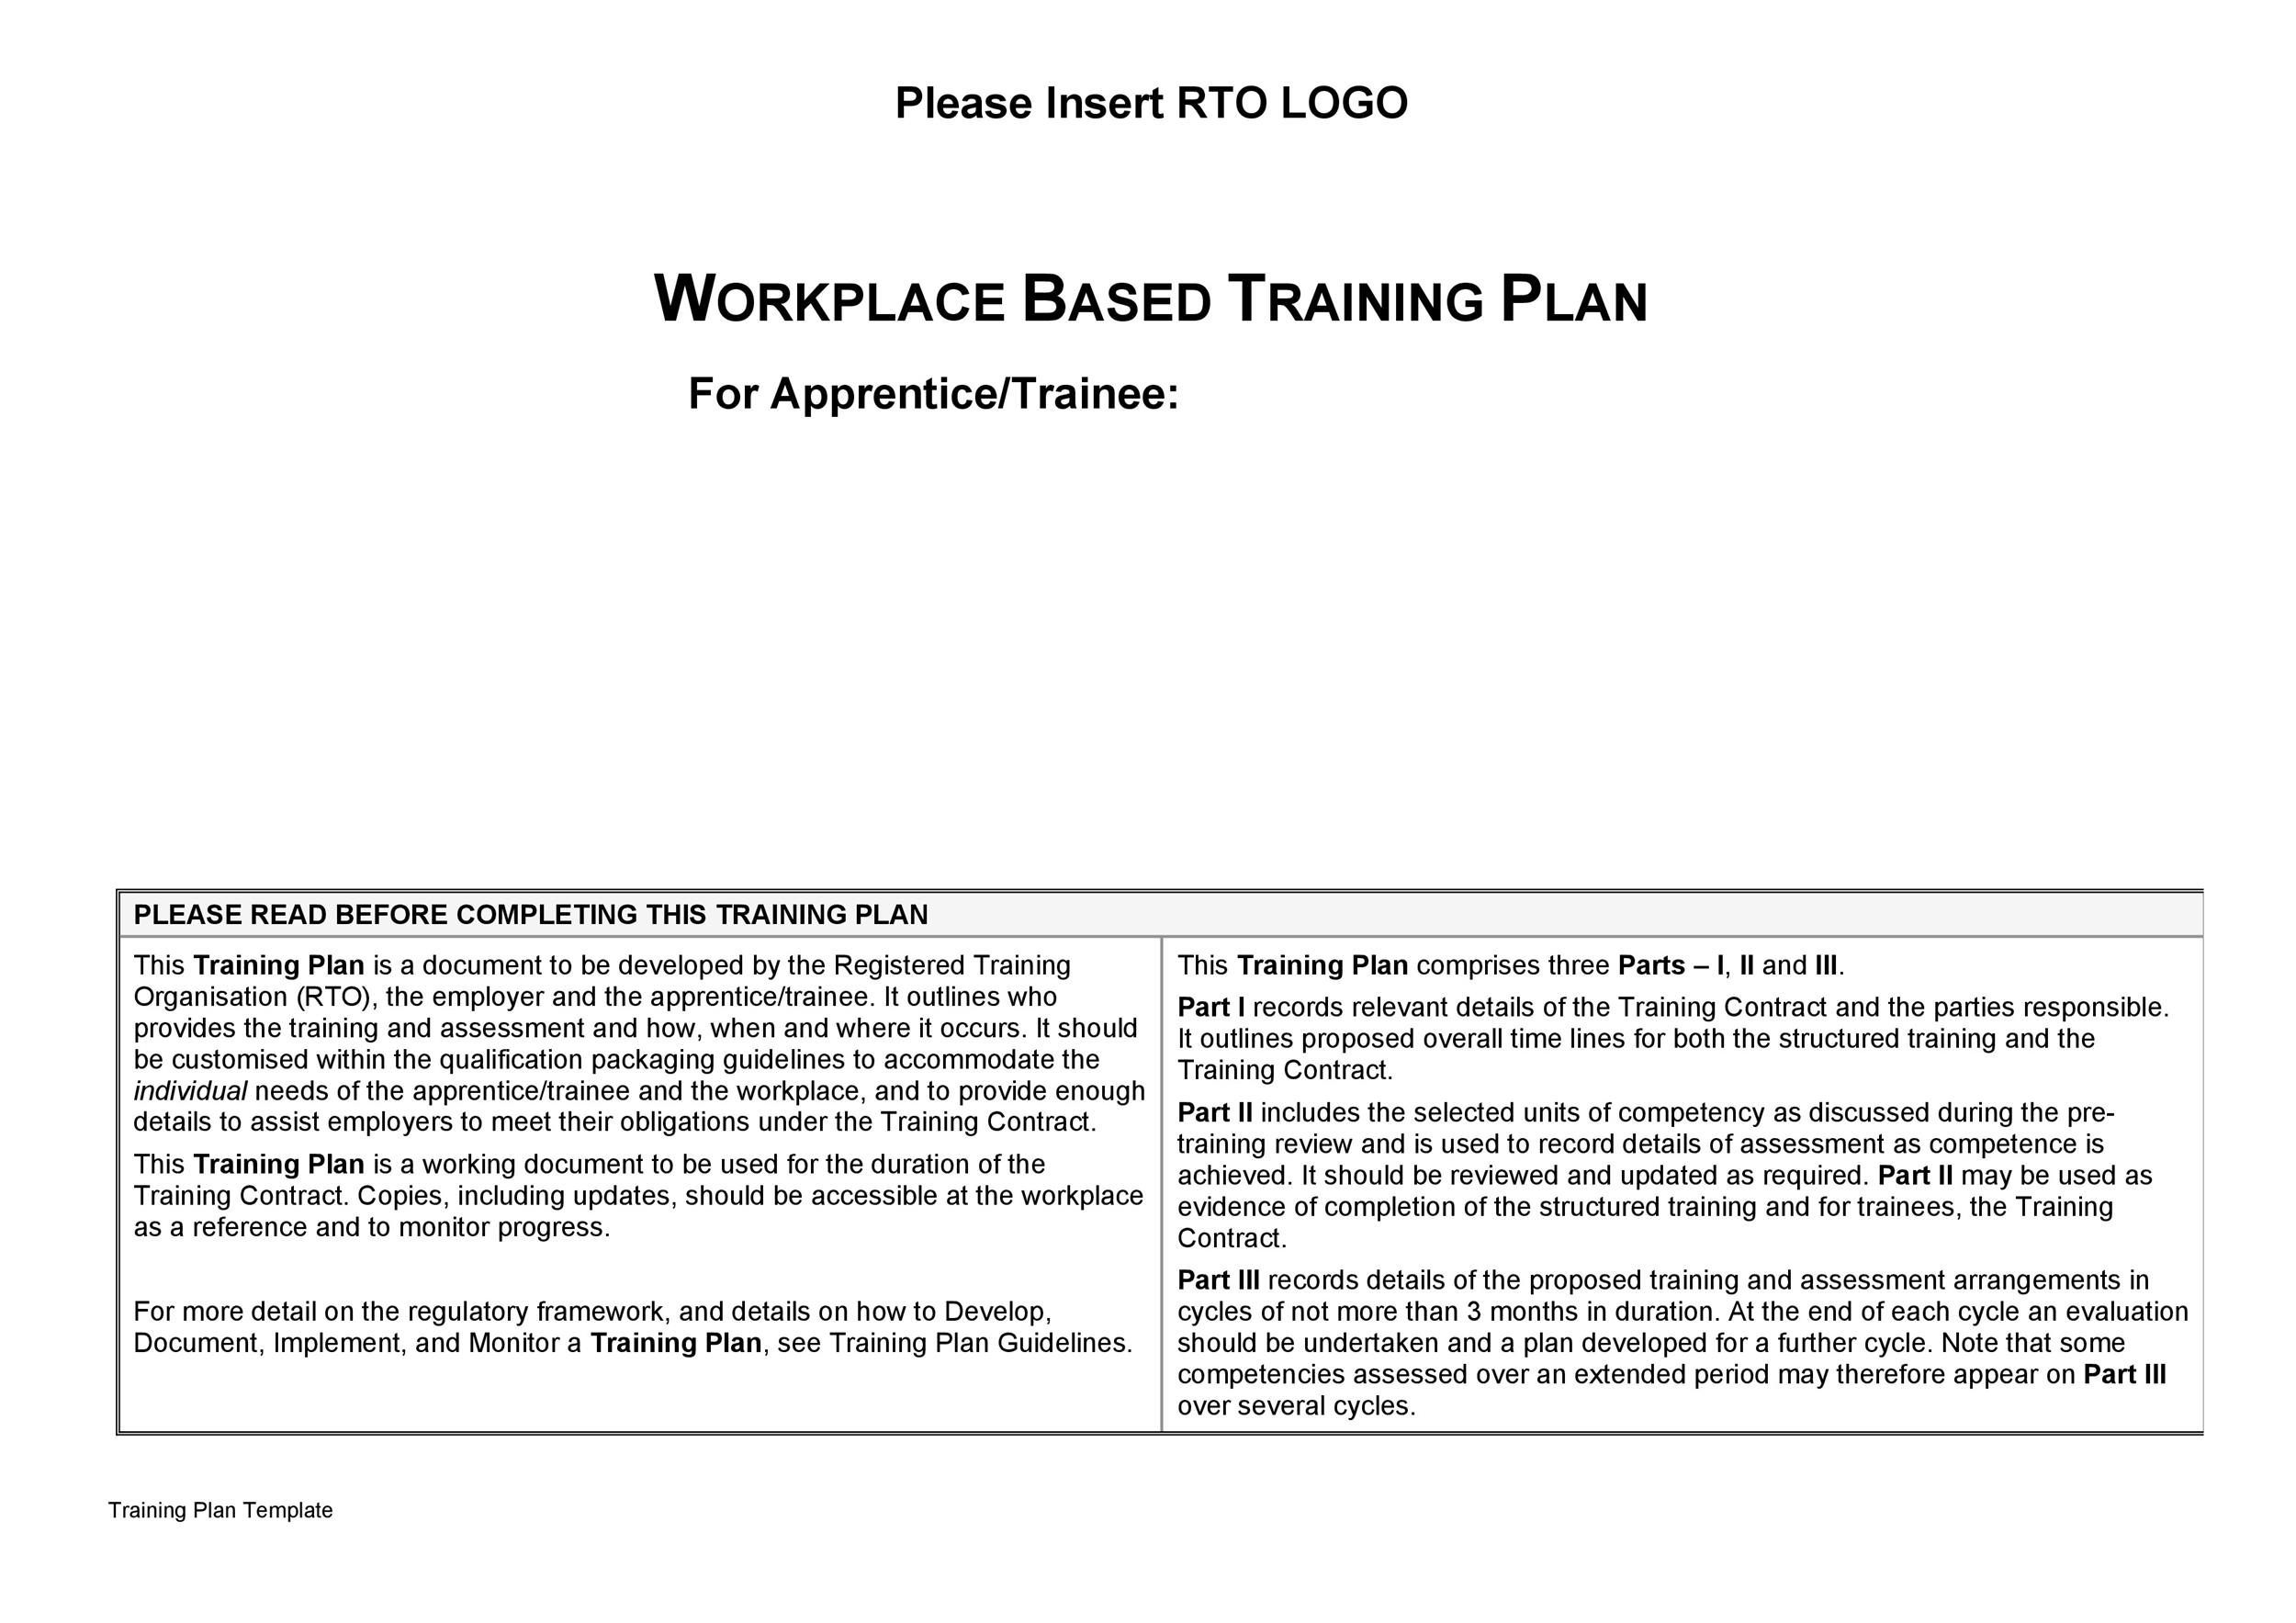 Training Manual - 40+ Free Templates  Examples in MS Word - how to manual template